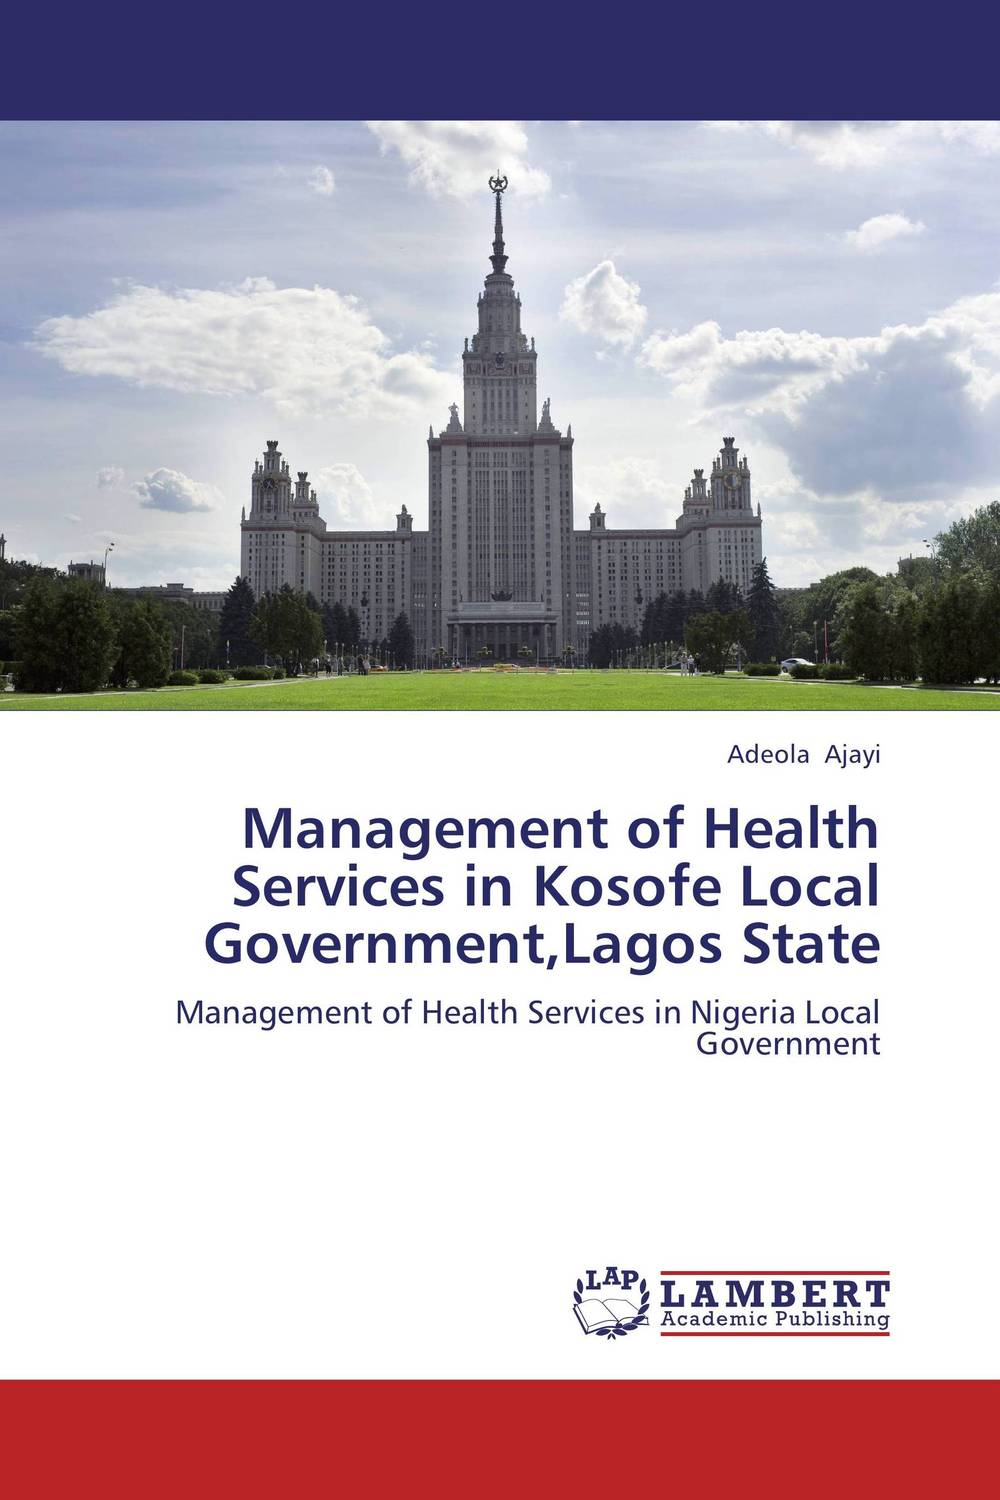 купить Management of Health Services in Kosofe Local Government,Lagos State по цене 4468 рублей